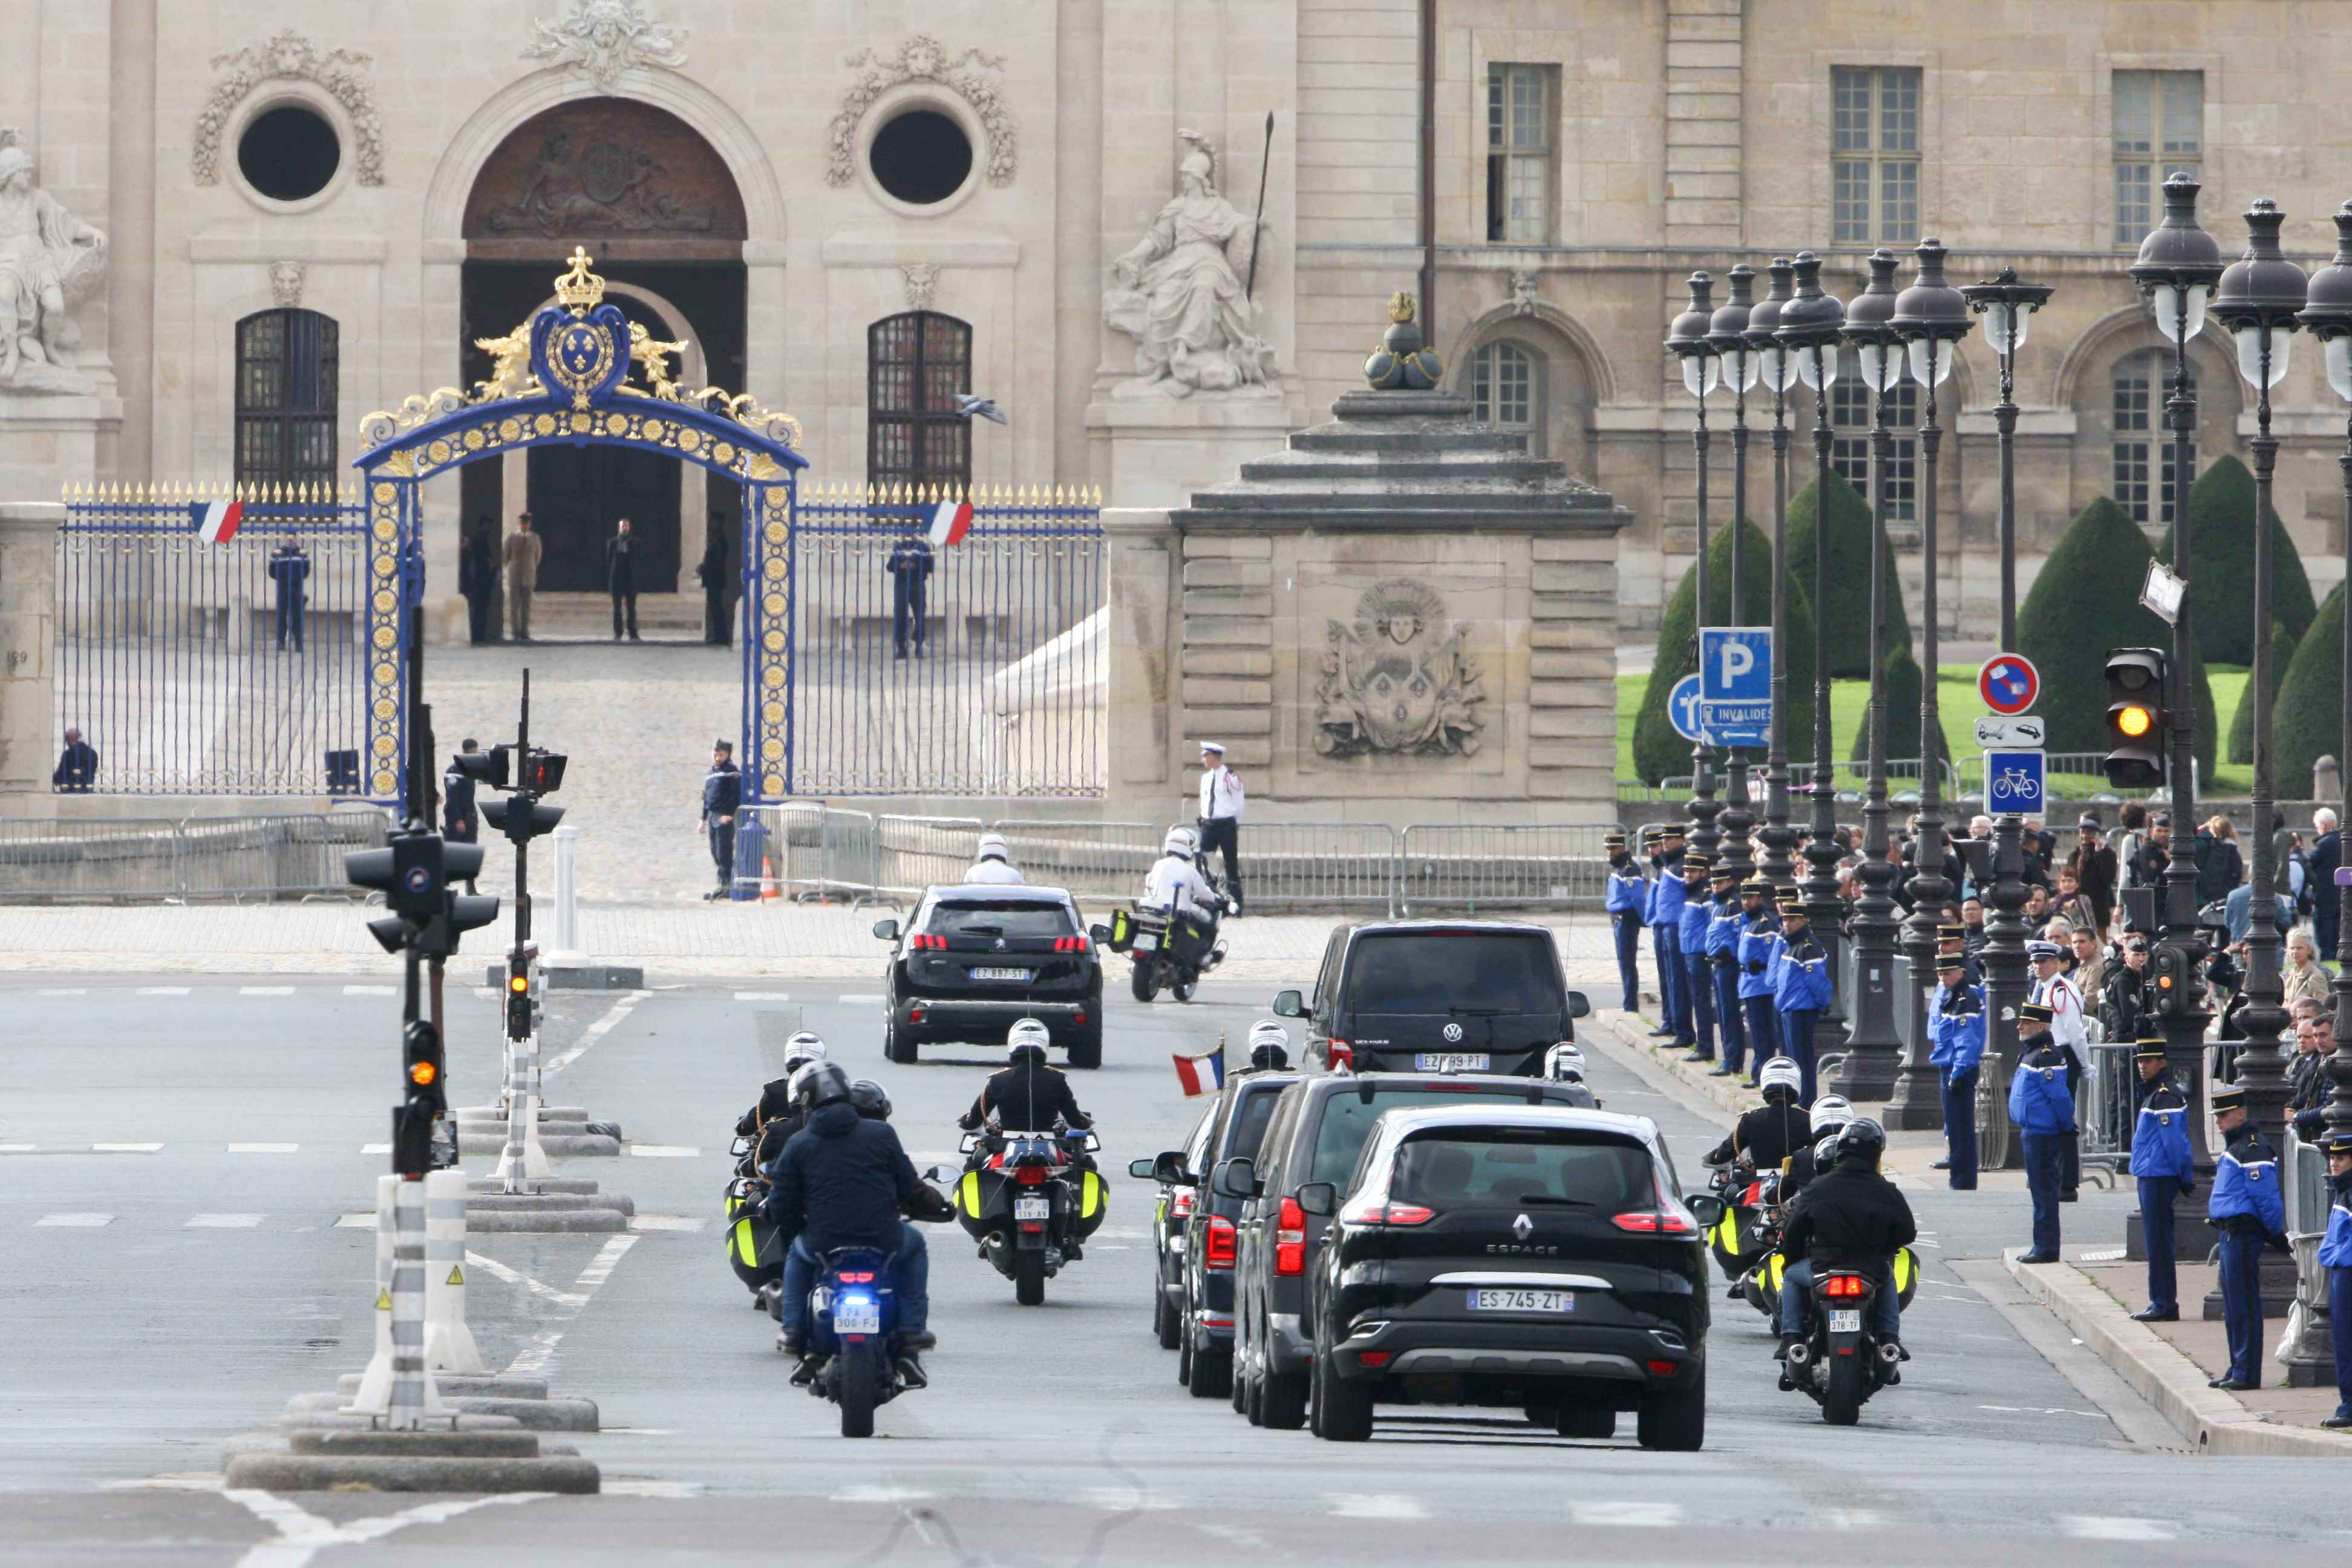 French President Emmanuel Macron arrives to attend a military tribute to former French President Jacques Chirac at the Invalides (Hotel des Invalides) in Paris on September 30, 2019. Former French President Jacques Chirac died on September 26, 2019 at the